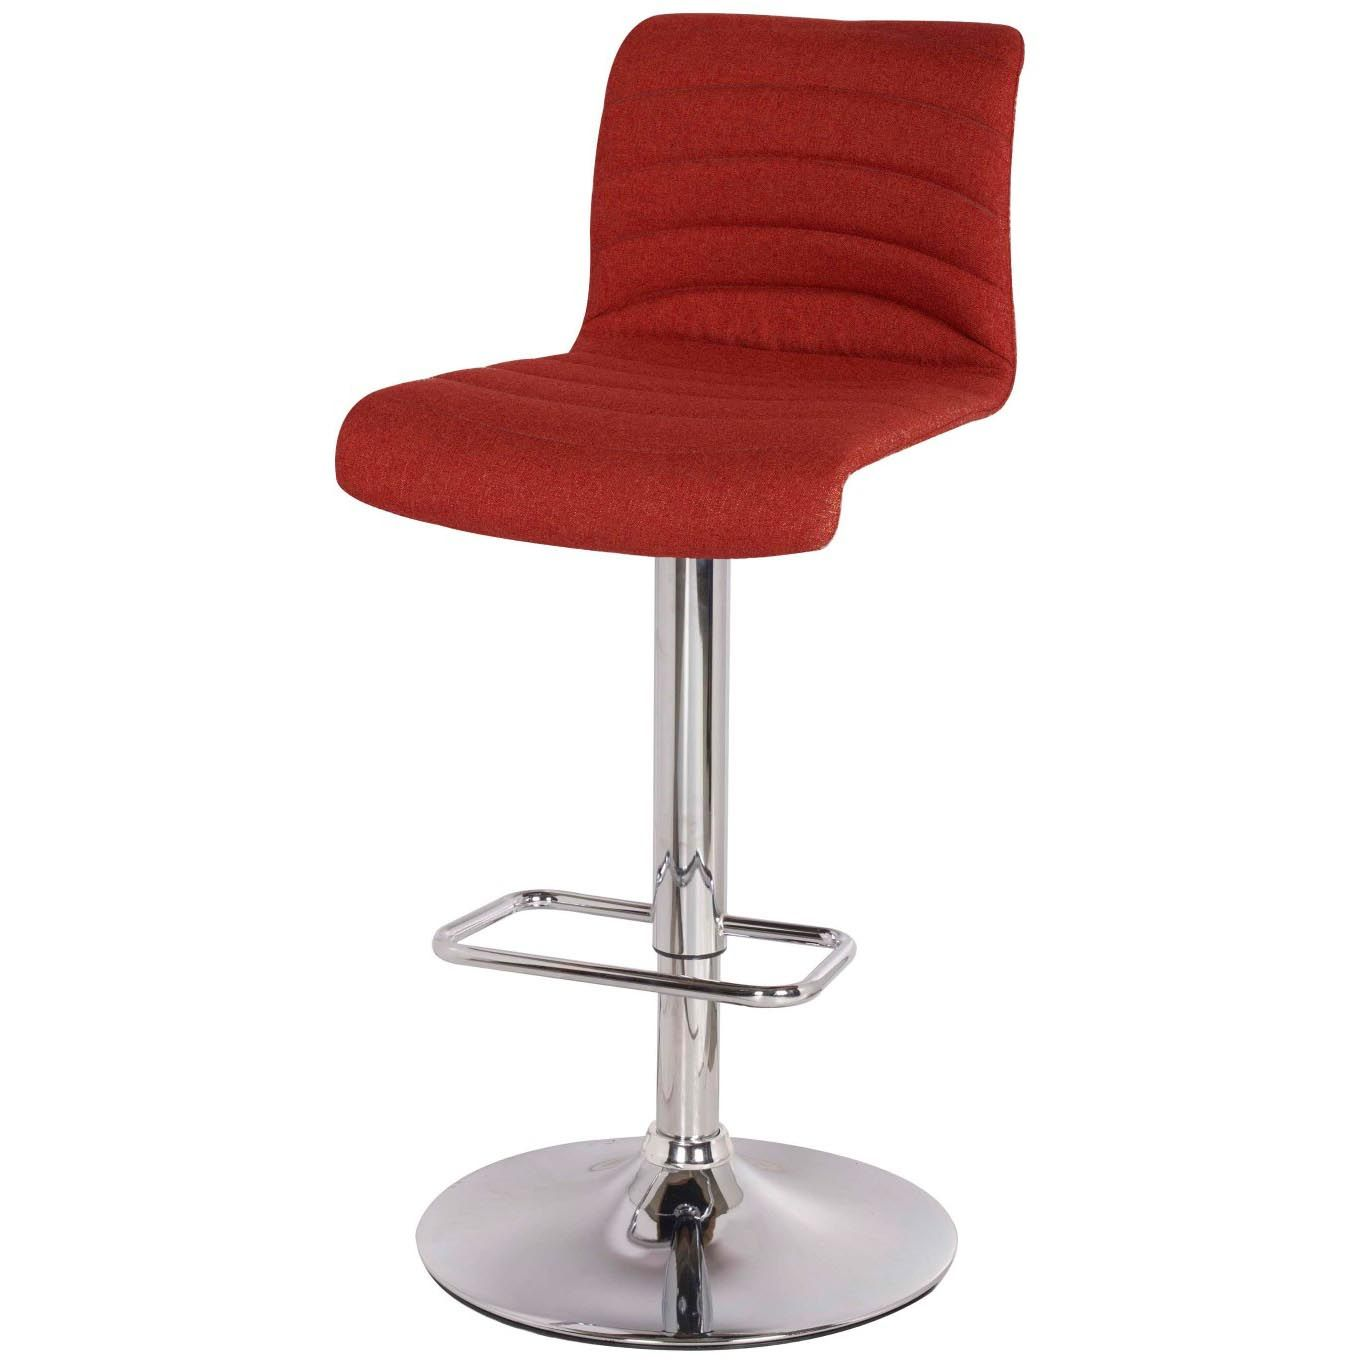 939530 Cn Npd New Pacific Direct Furniture And More With Images Bar Stools Npd Furniture